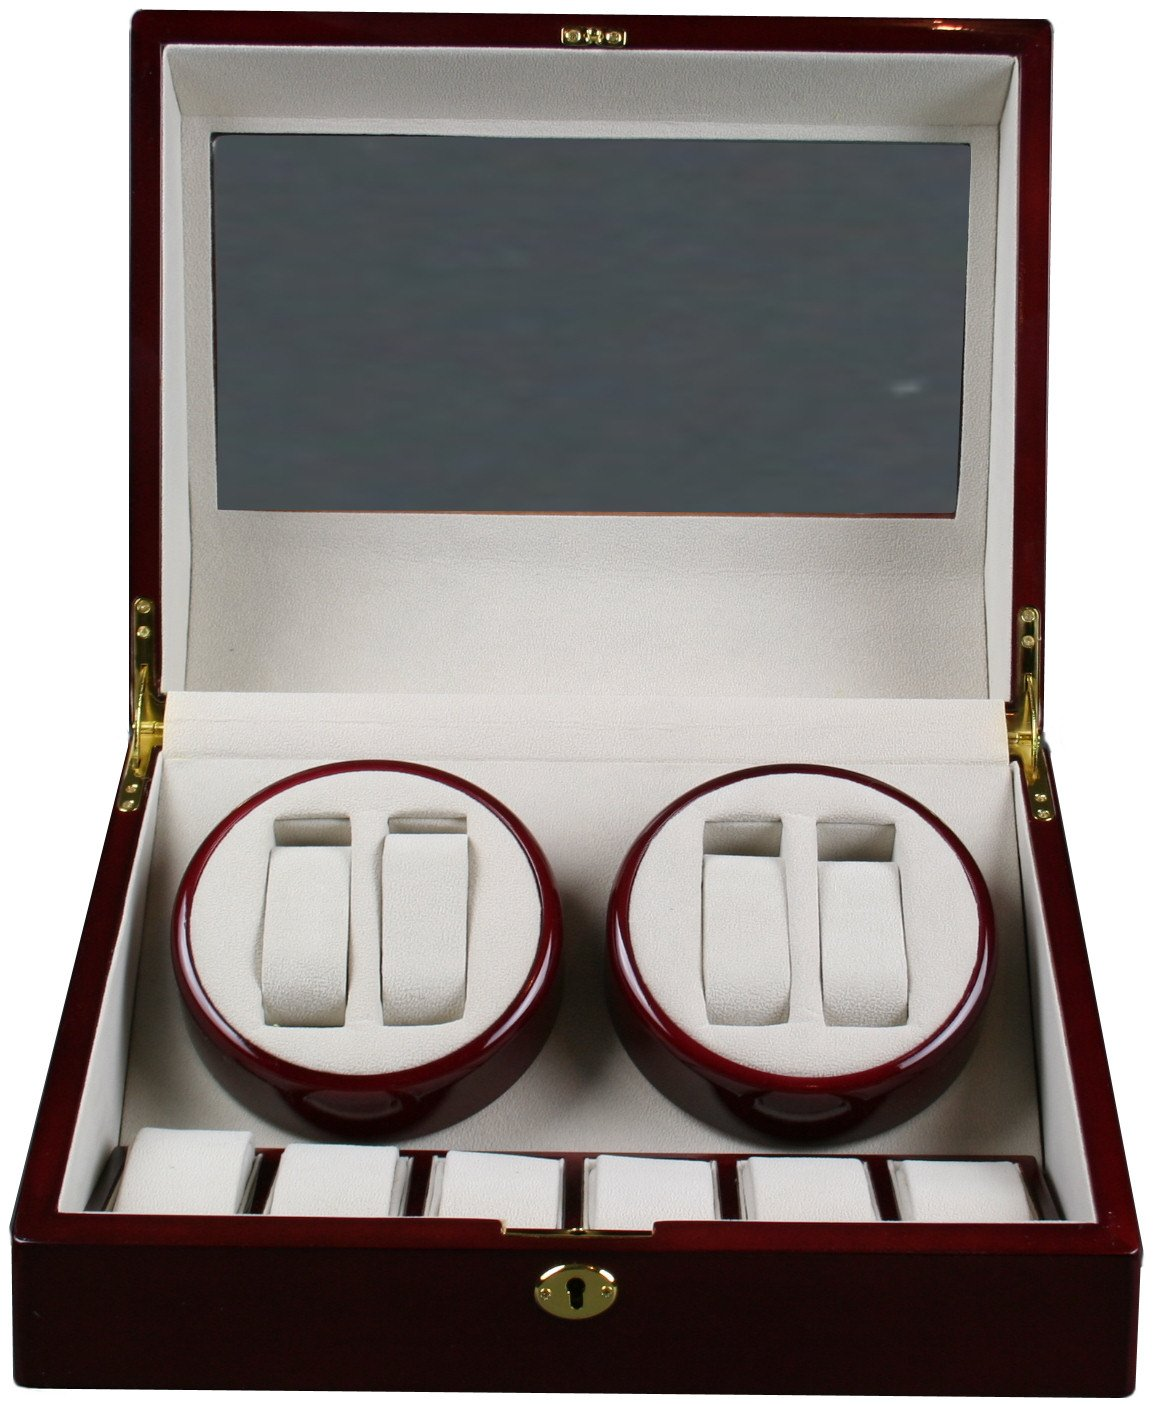 Top Quality Quad Watch Winder 4+6 Storage Box Case by Kendal (Image #2)